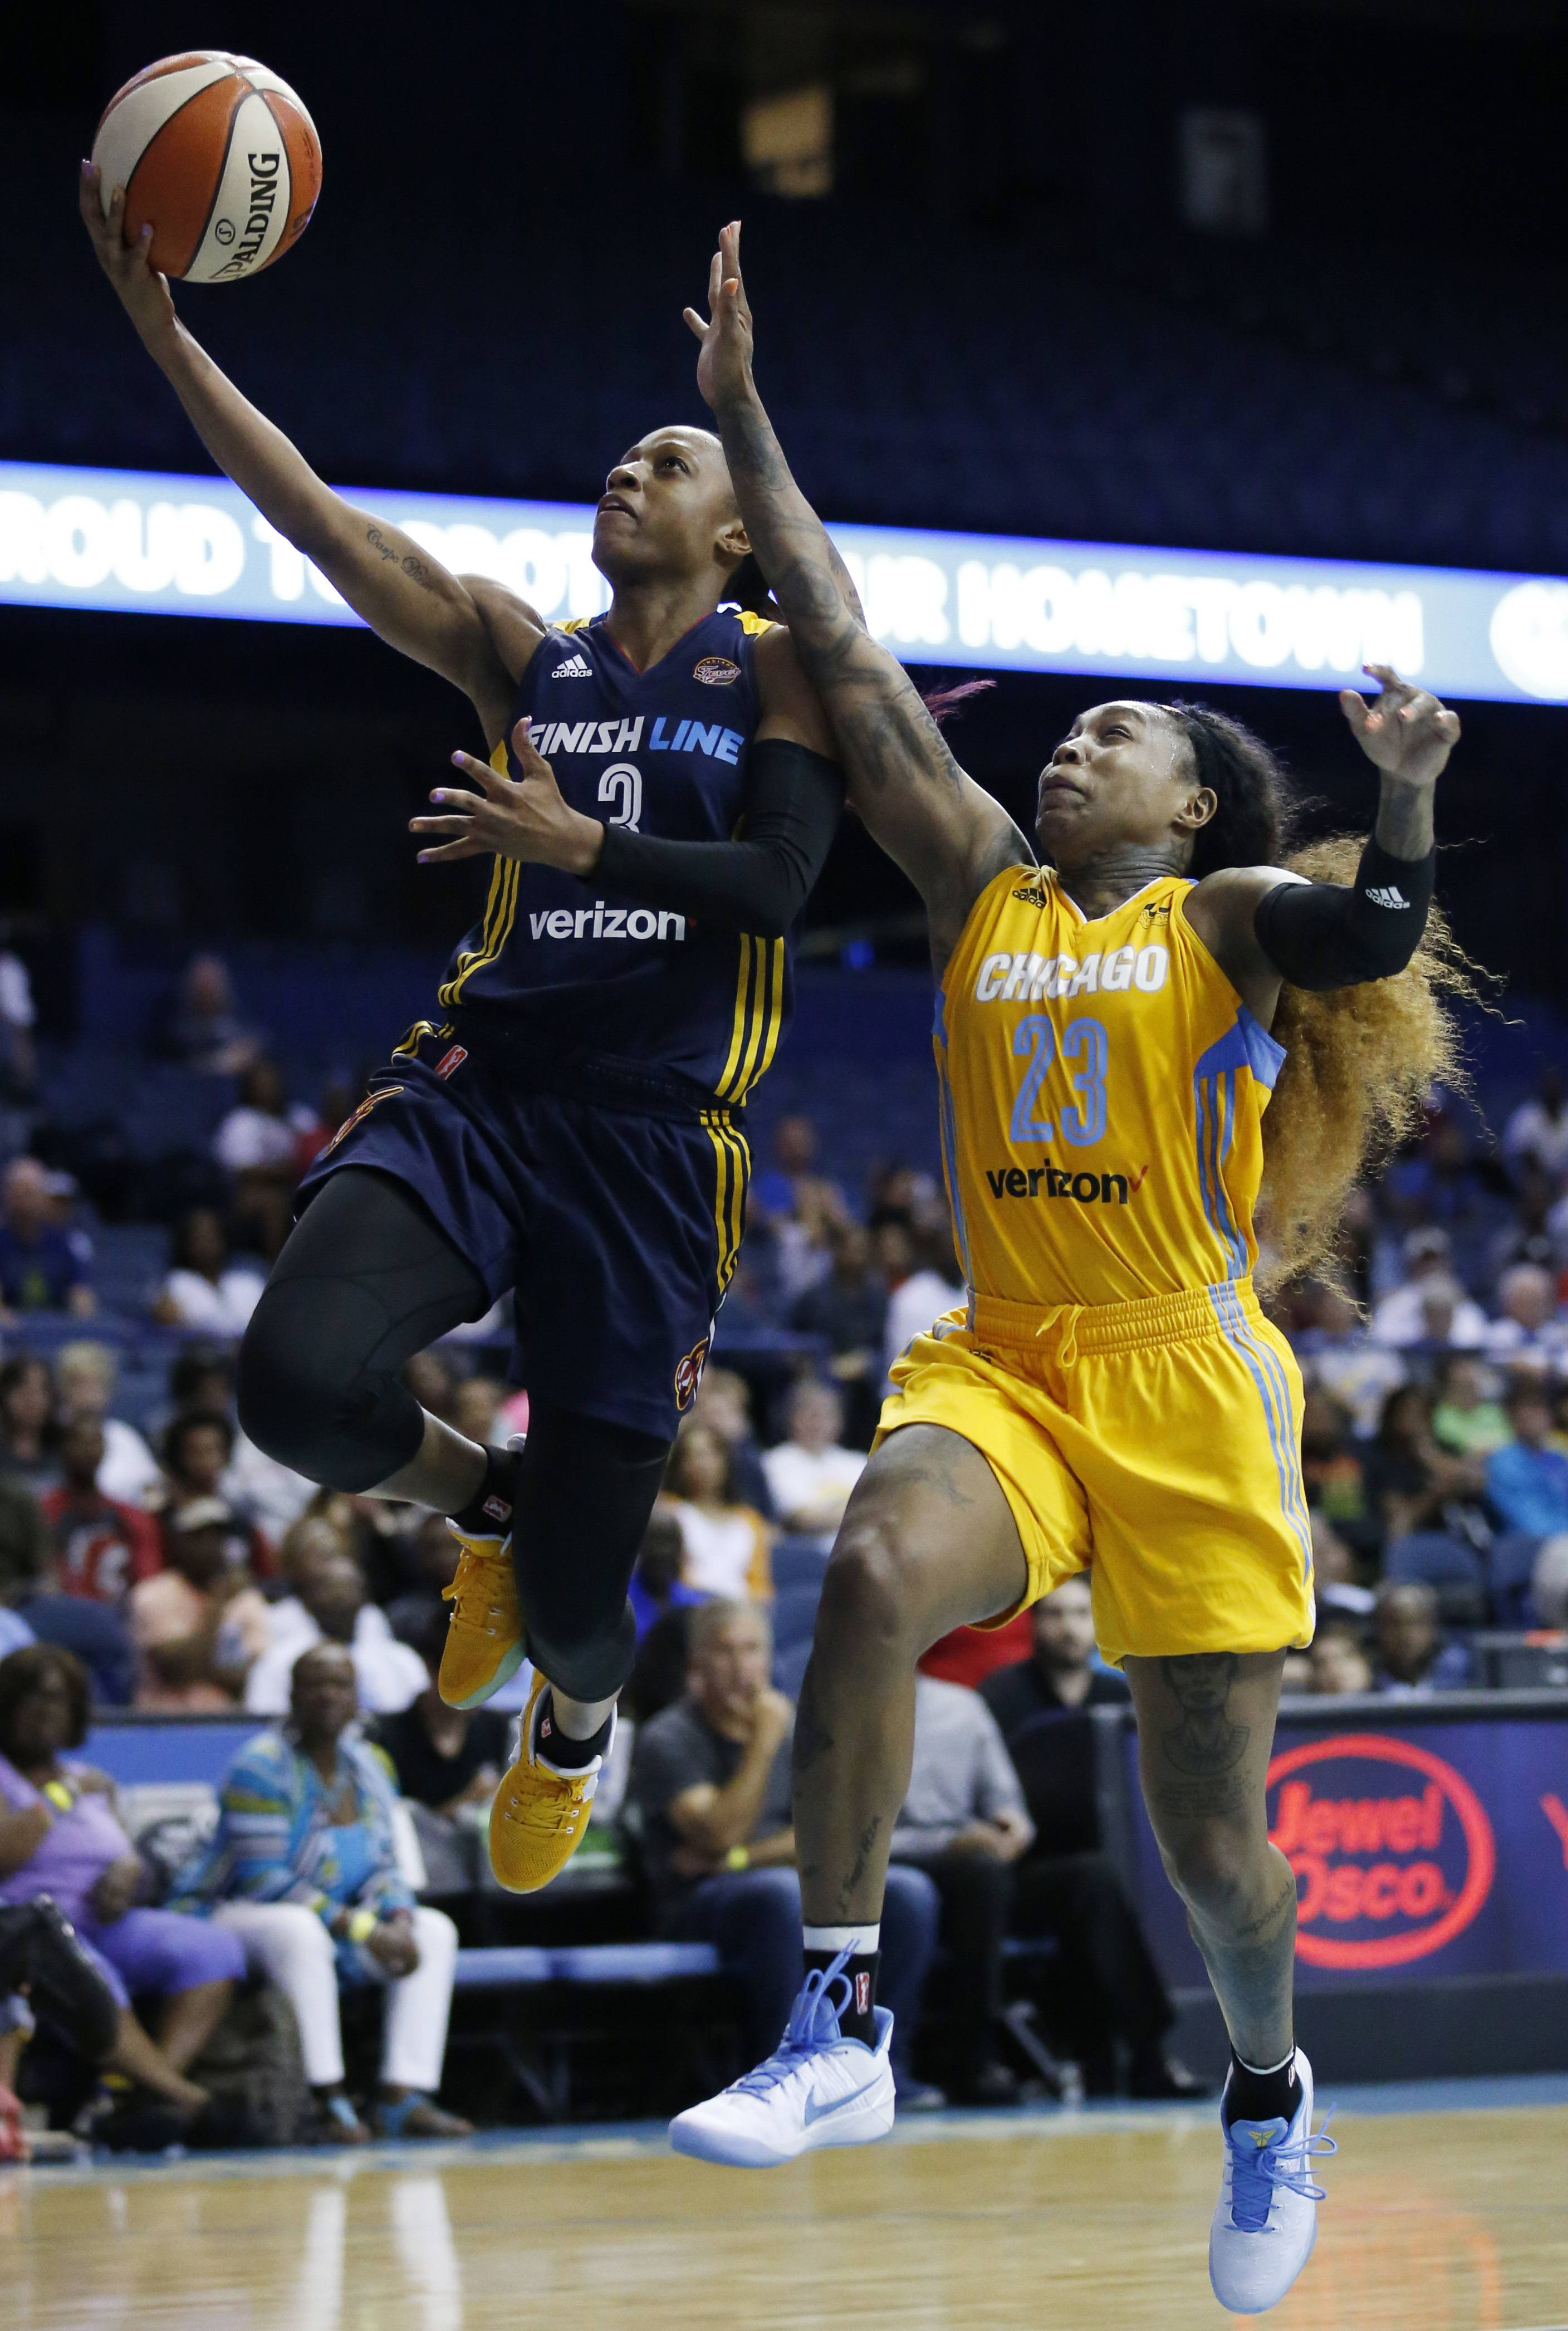 Indiana Fever guard Tiffany Mitchell, left, drives to the basket past Chicago Sky guard Cappie Pondexter during the second half Sunday at Allstate Arena.